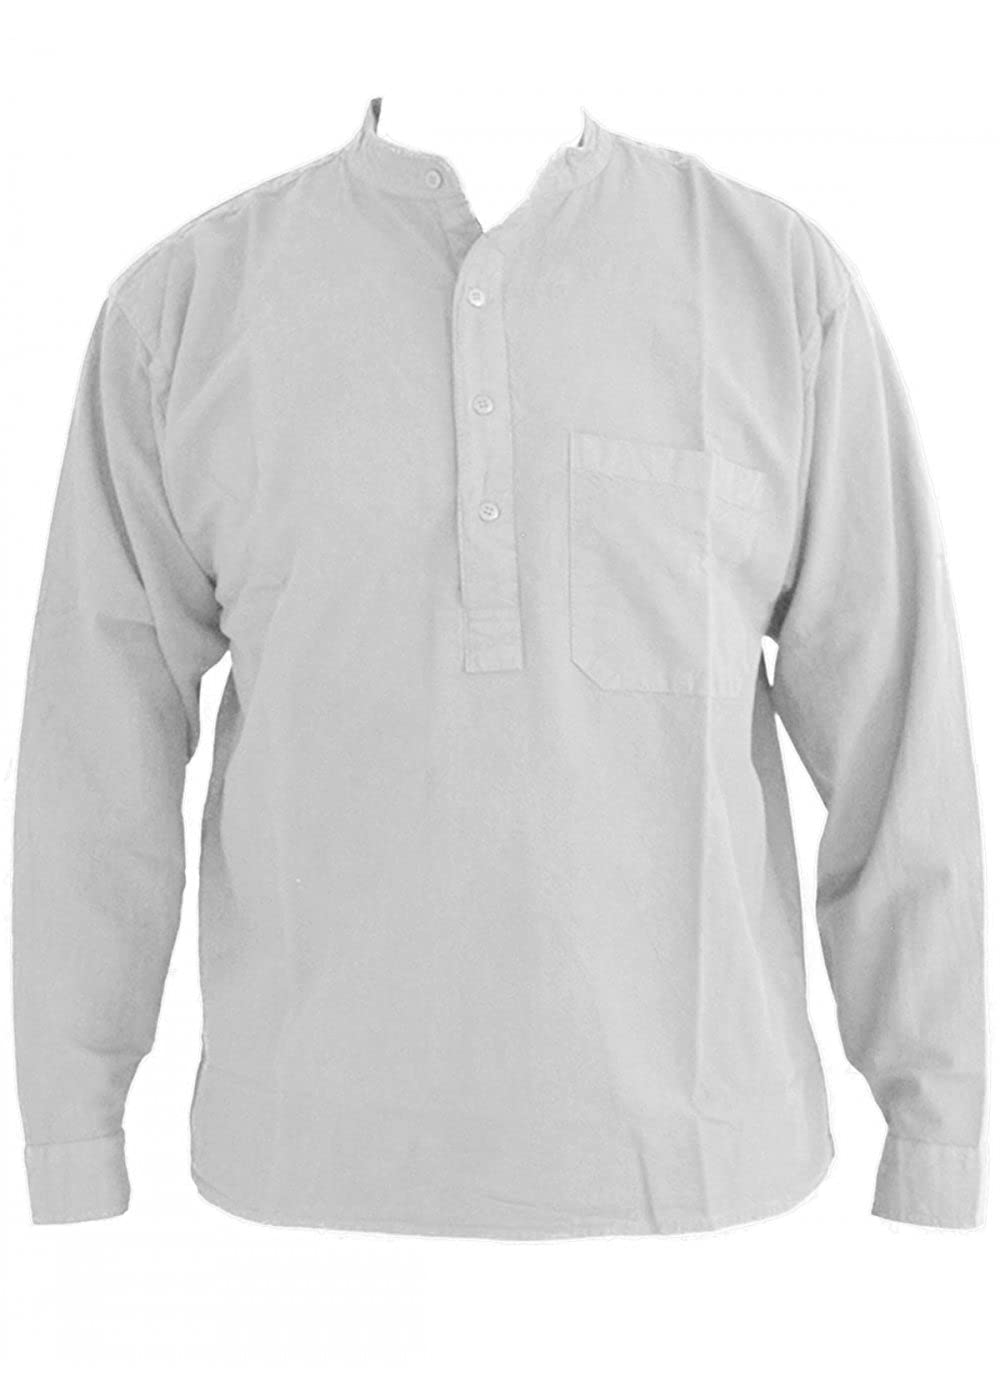 1920s Style Mens Shirts | Peaky Blinders Shirts and Collars White Grandad Collarless Shirt Cotton Sizes Small to 2XL £23.99 AT vintagedancer.com